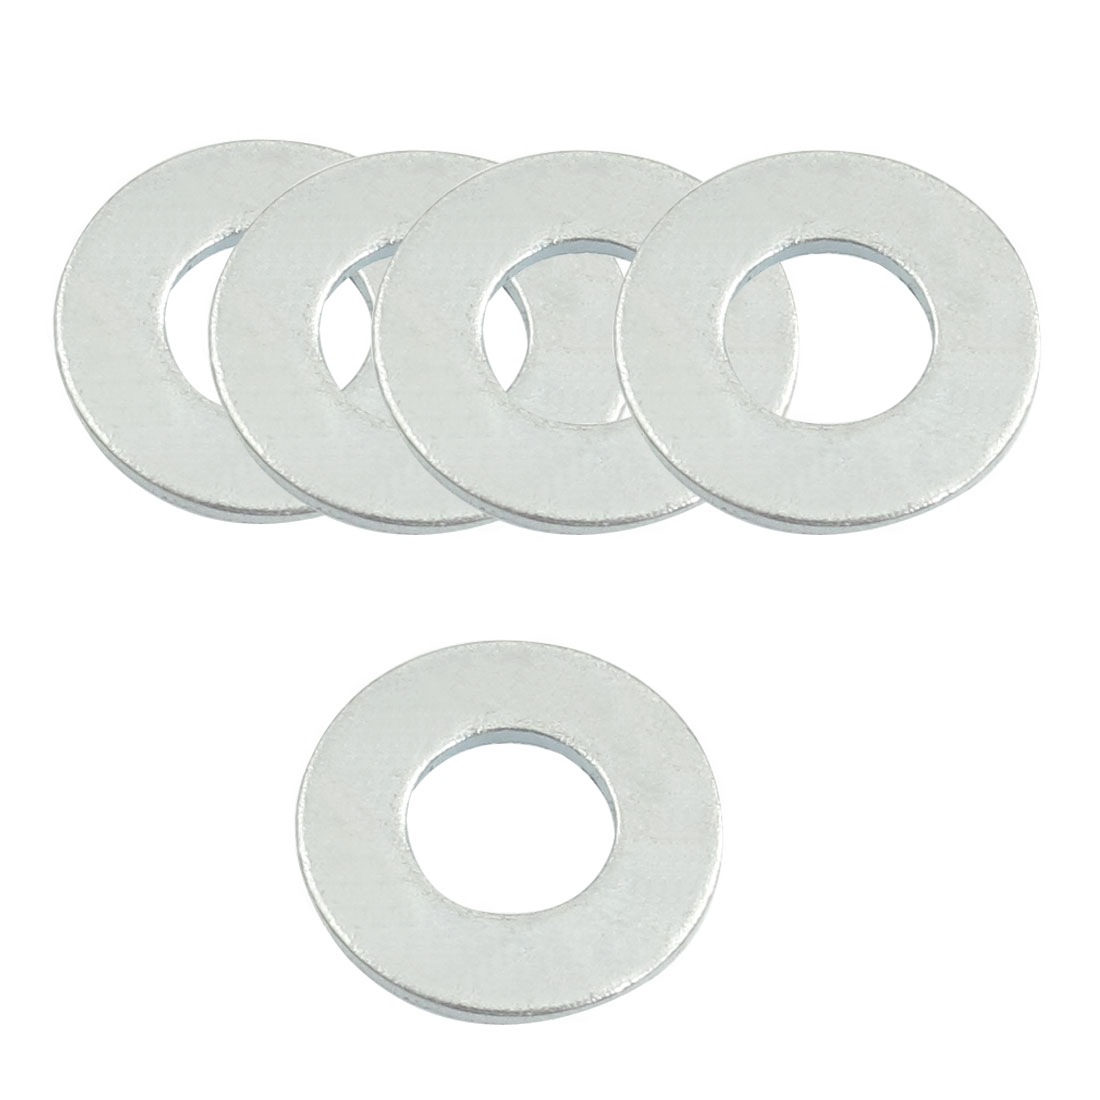 5 Pcs Repair Parts Metal Bearing Pad for Bosch GWS6-100 Angle Grinder